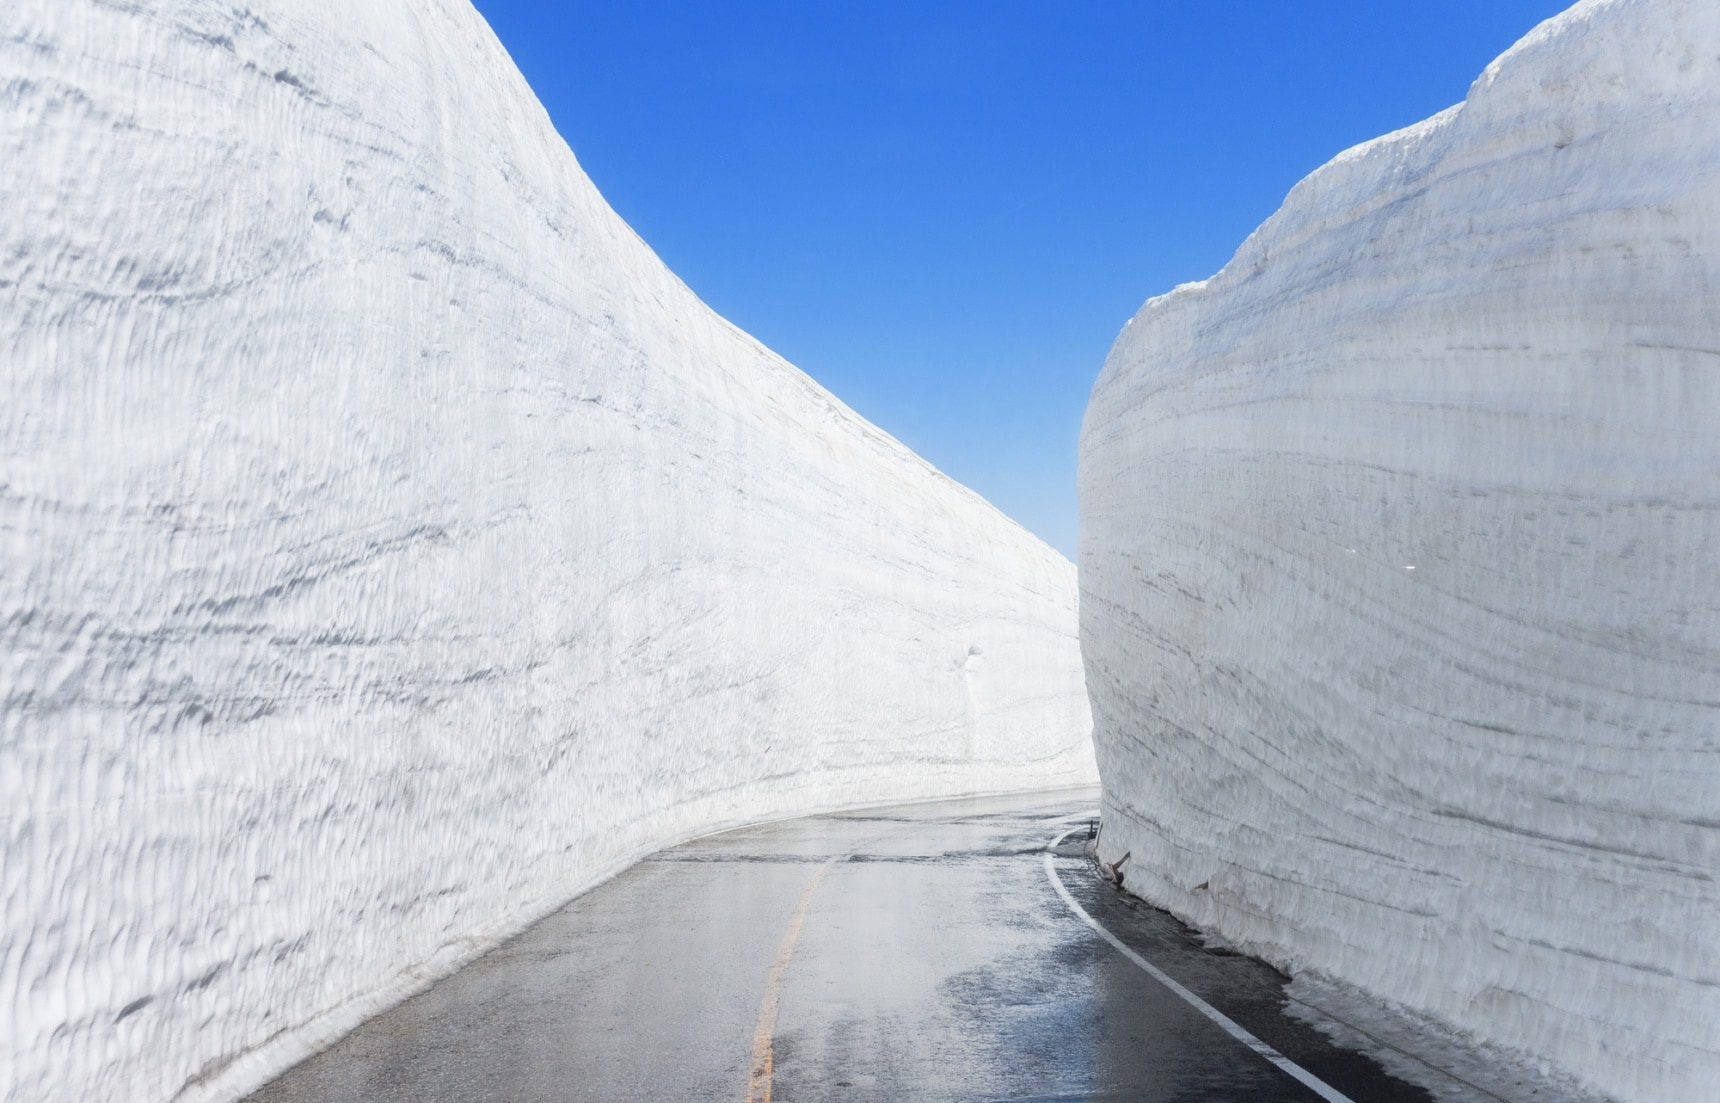 Affordable Travel to Snow Wall Yuki-no-Otani